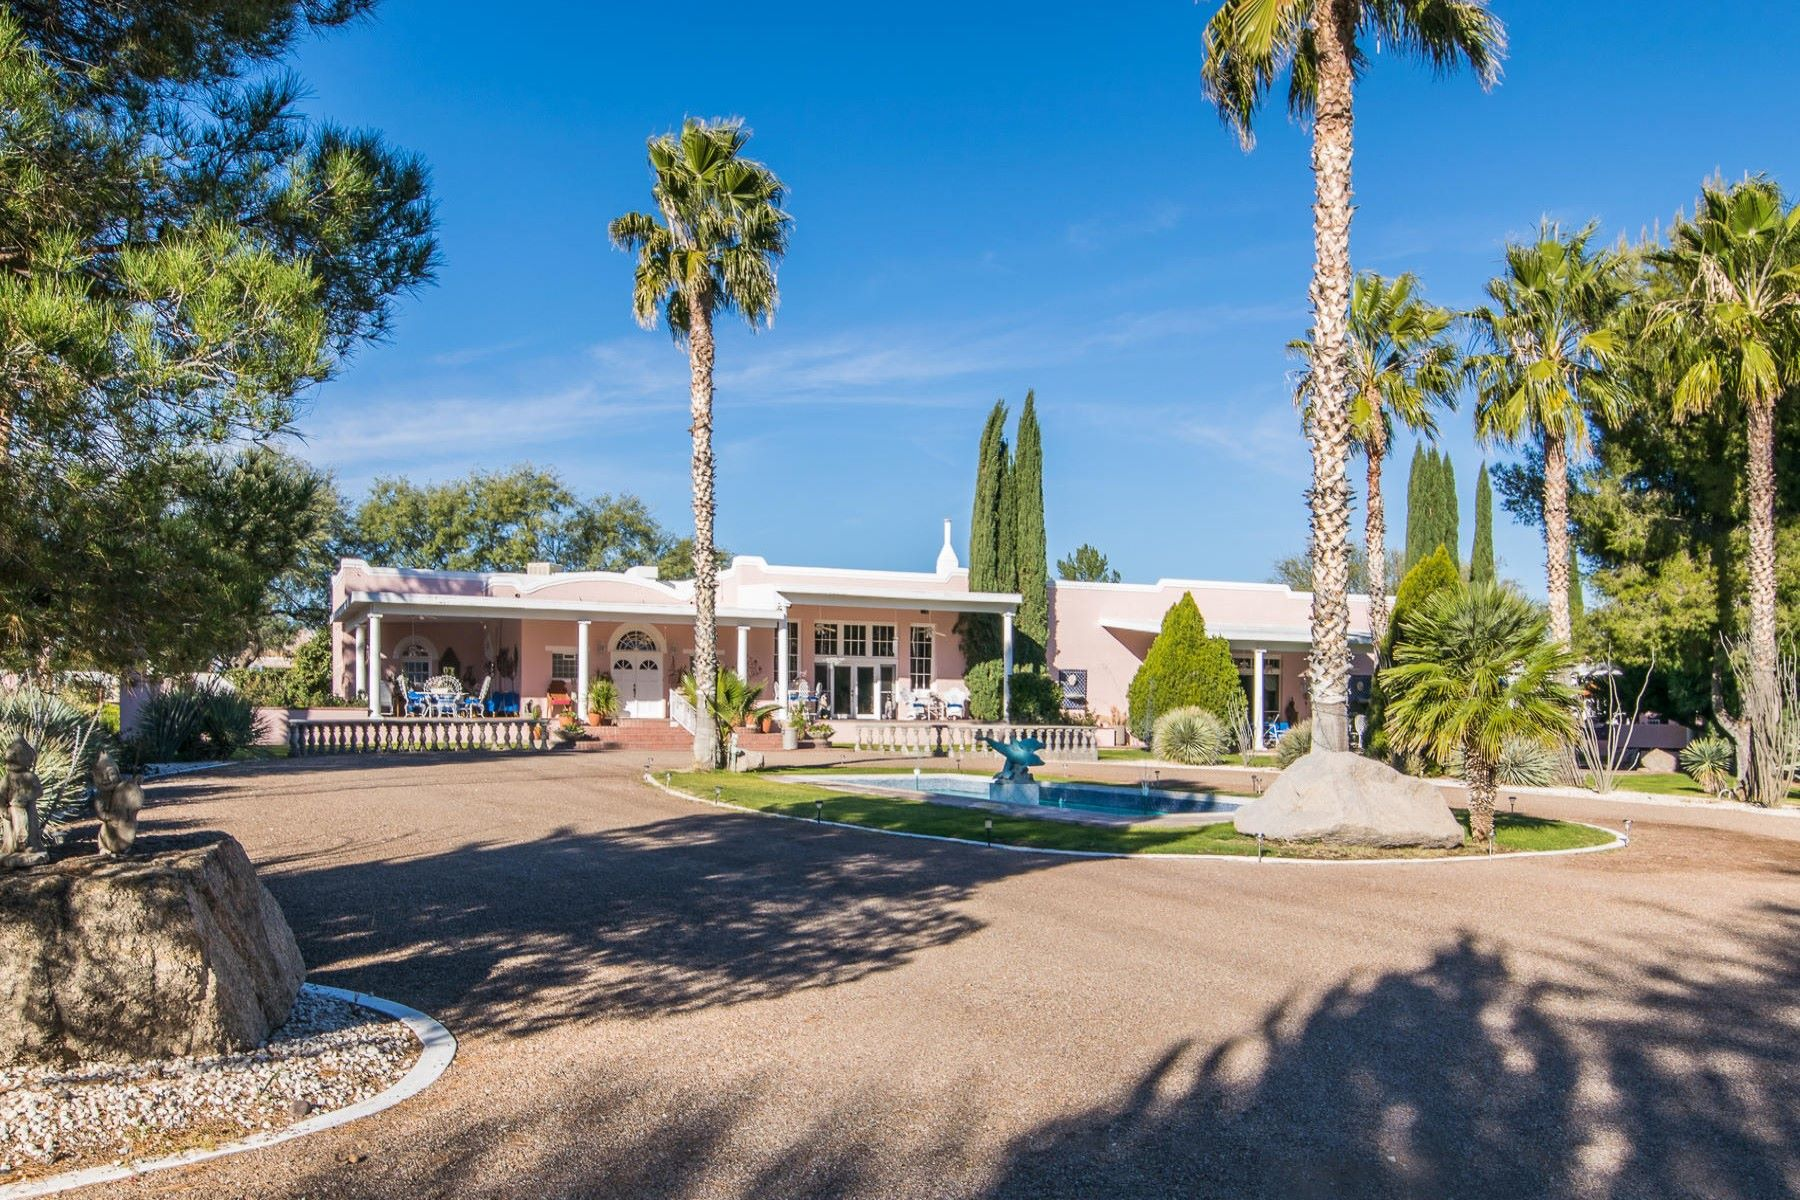 Single Family Home for Sale at Fabled Amado Schoolhouse transformed into an extraordinary private home 8 Amado Montosa Rd Amado, Arizona, 85645 United States